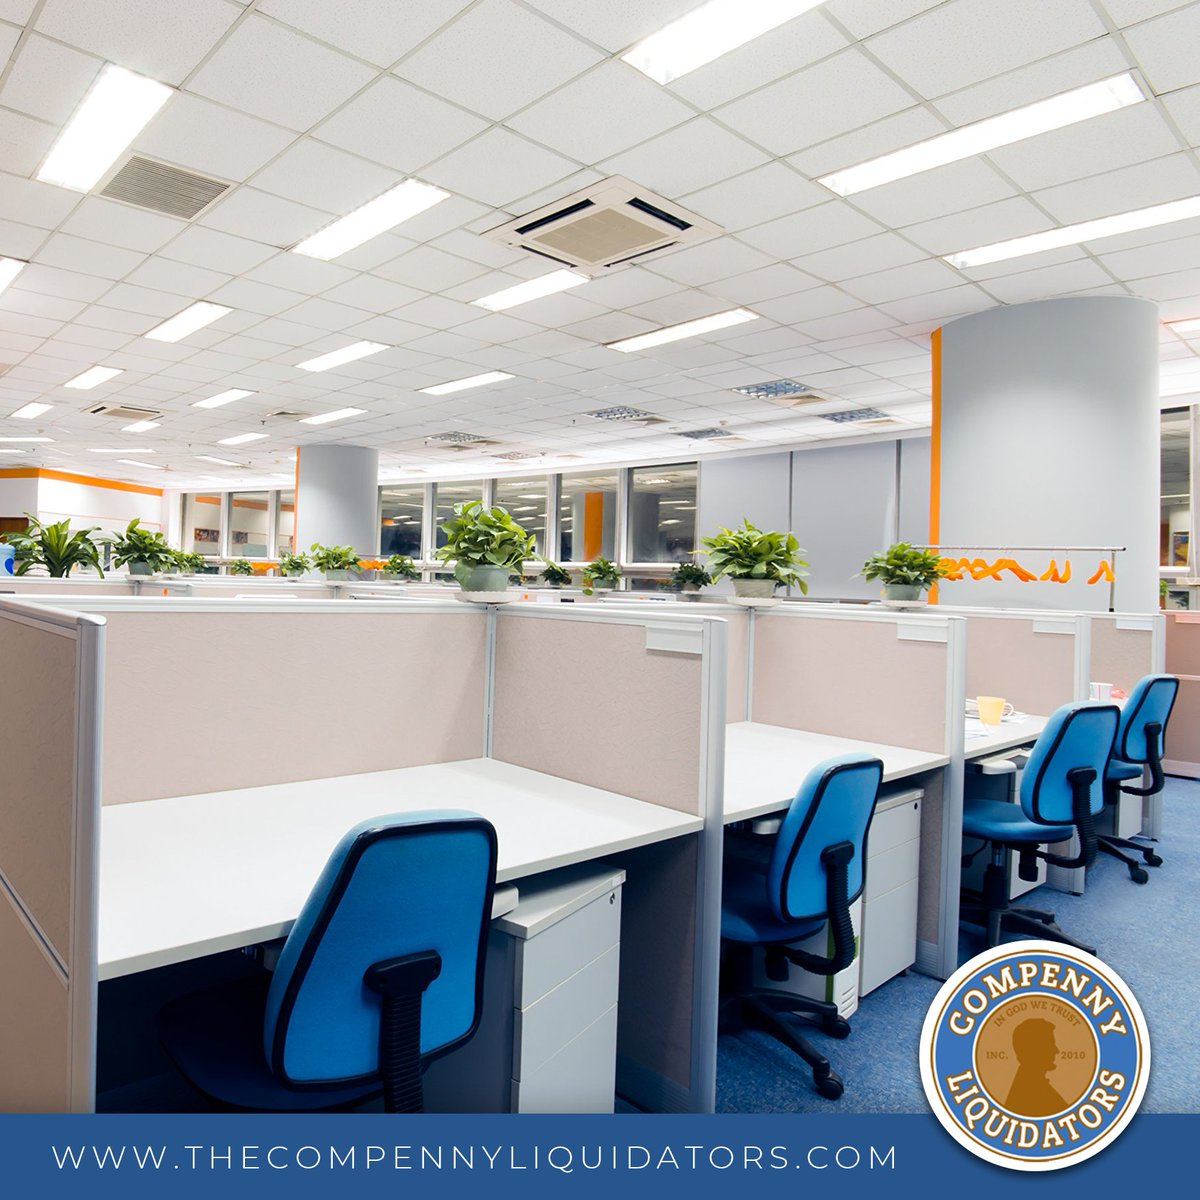 Give your employees the best workspace possible. Contact us today to get started!  . . . #Work #OfficeWork #Office #Cubicle #Workplace #Business #SmallBusiness #SMB #Leadership #SocialBusiness #Furniture #OfficeFurniture #Miami #WorkSpace #Florida